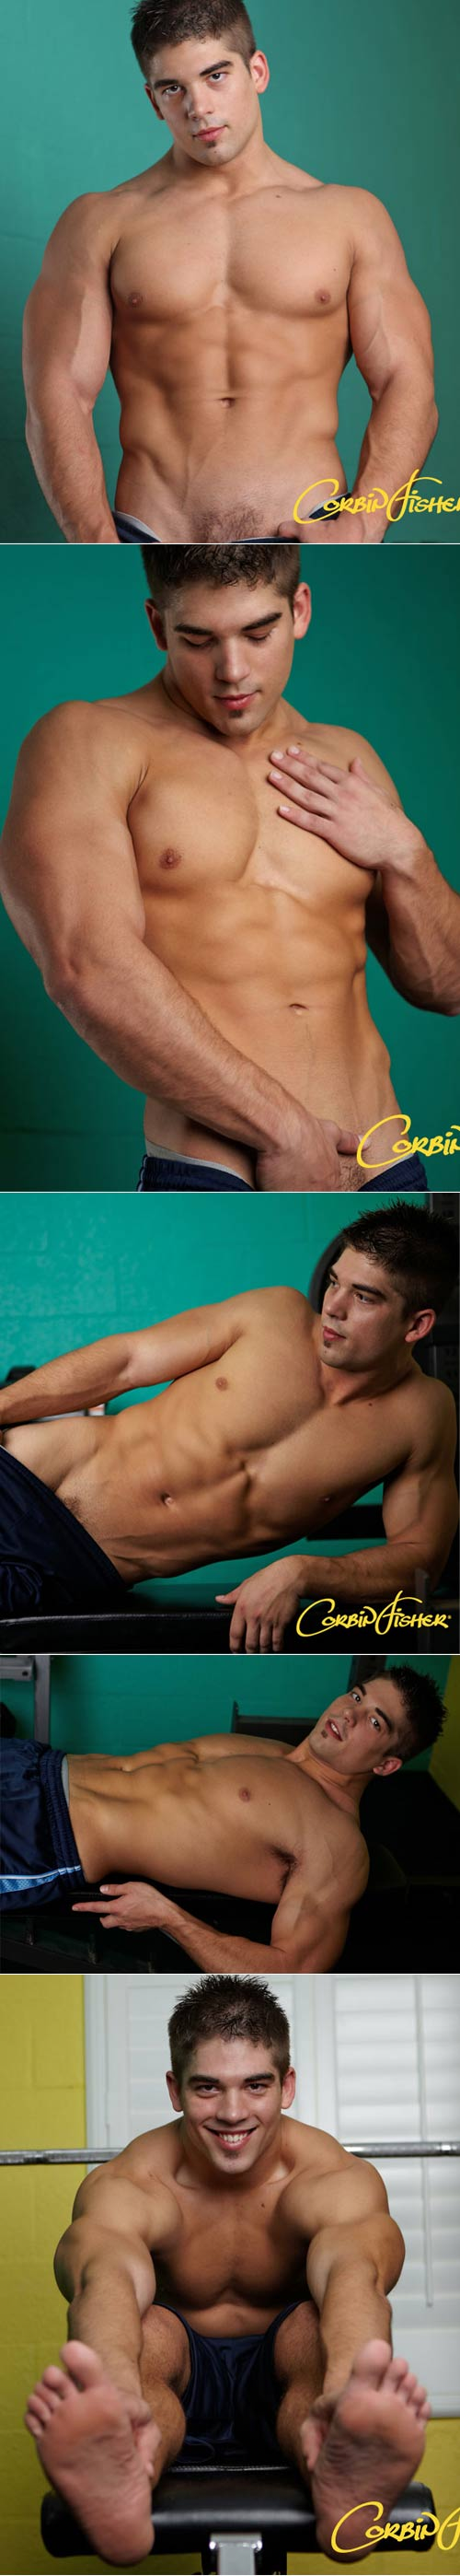 Aiden II at CorbinFisher